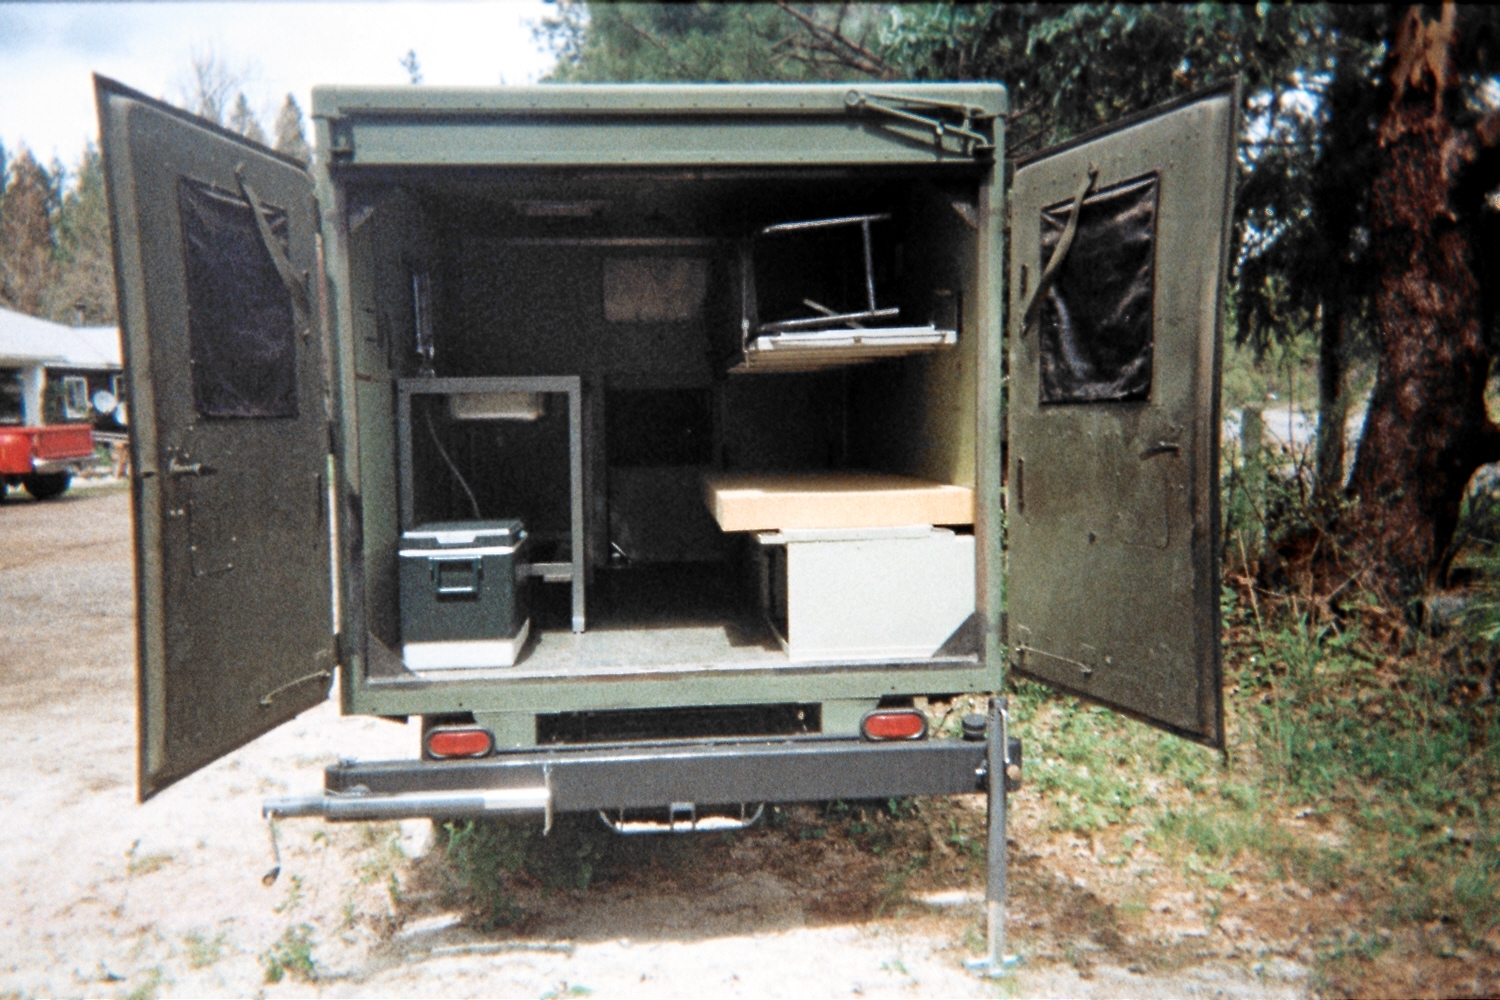 M1010 Serious Off Road Ambulance Camper Trailer For Sale